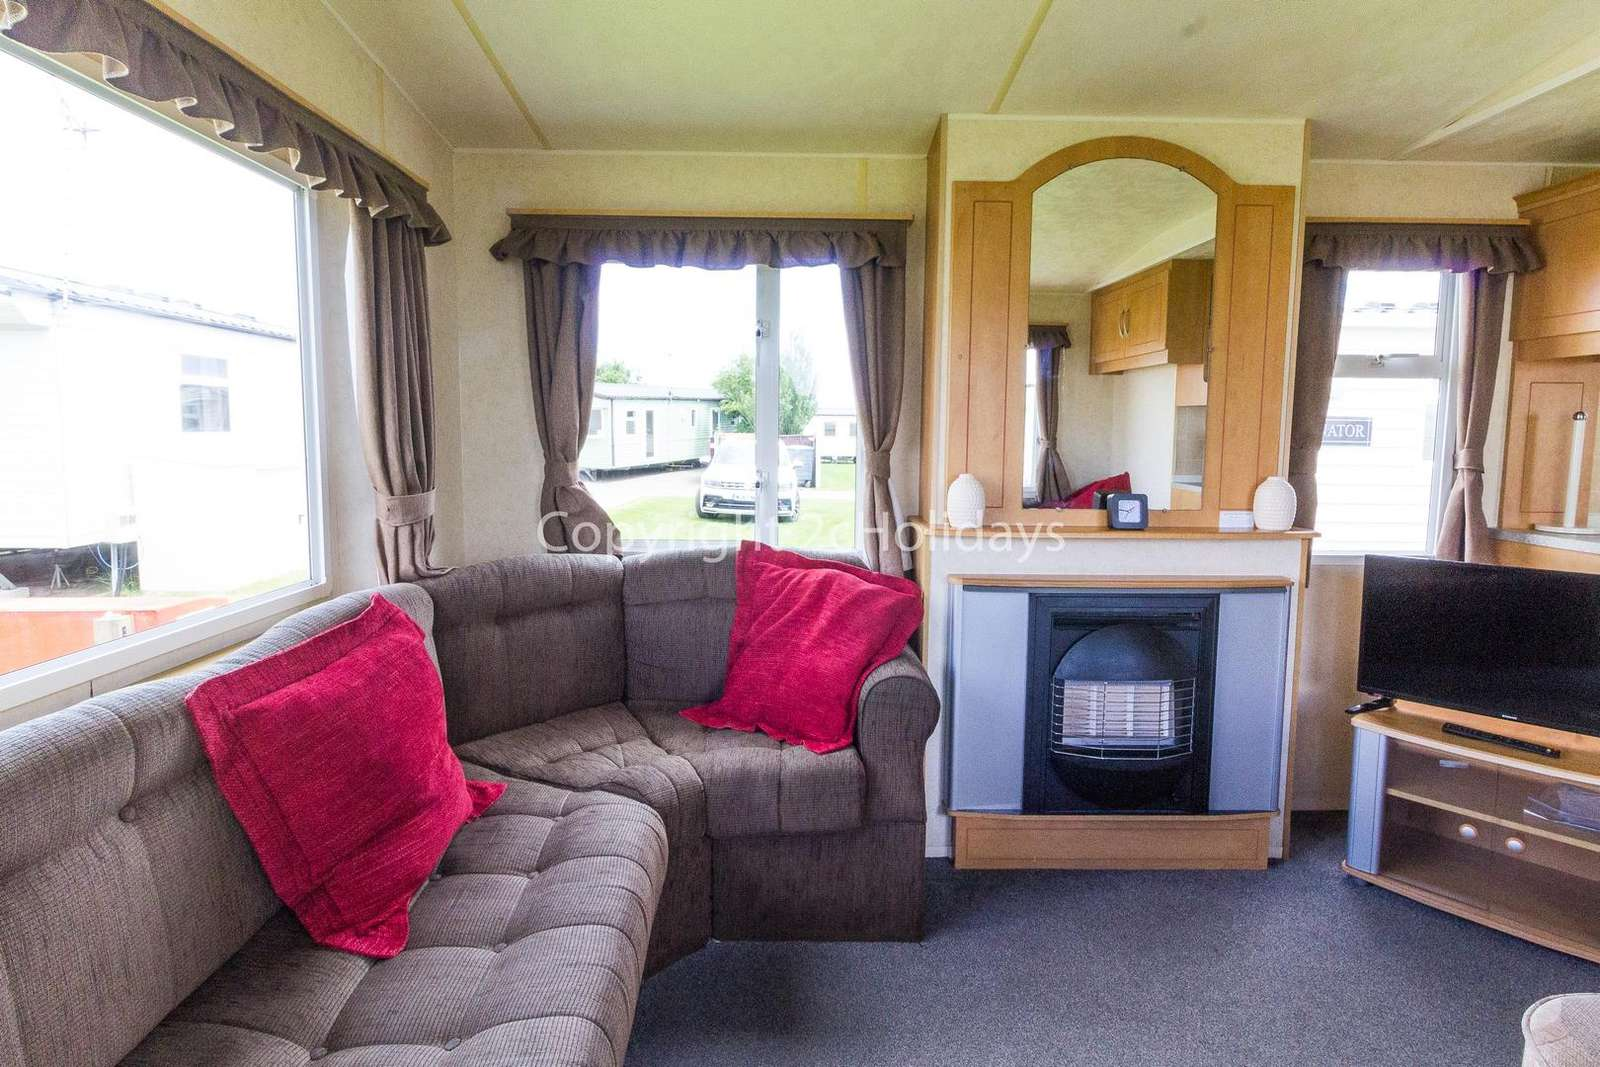 Homely caravan with an electric fire